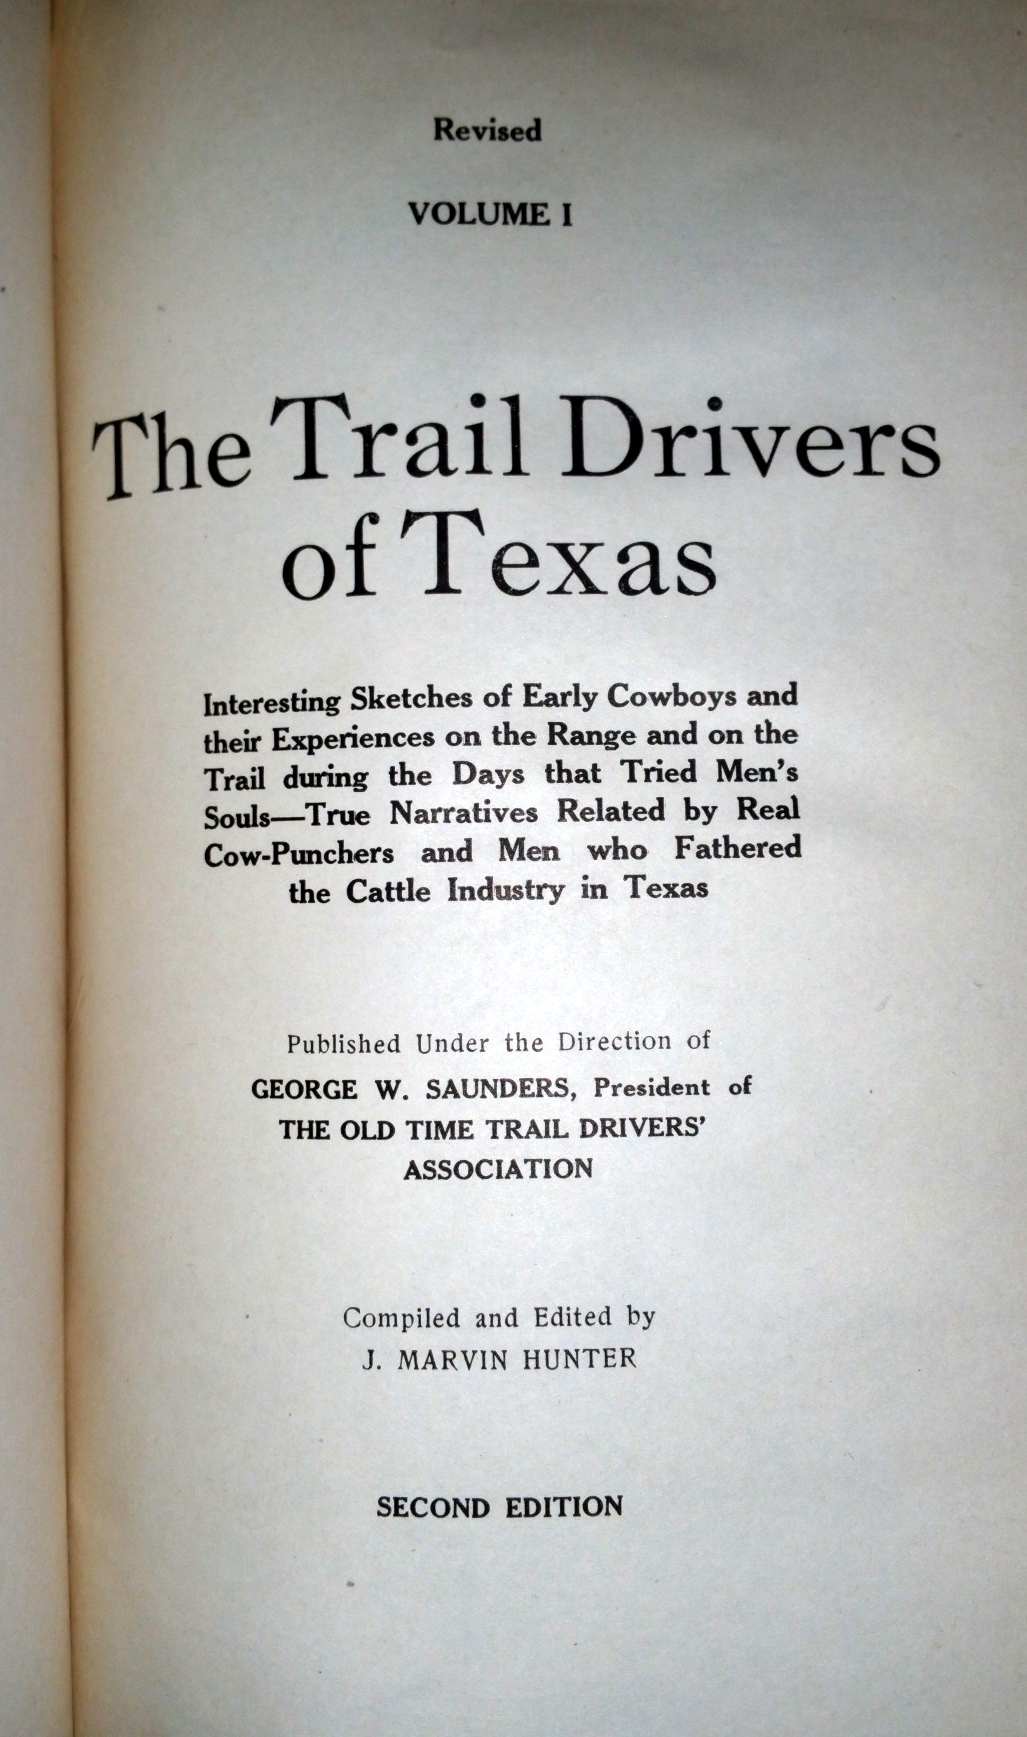 Image for The Trail Drivers of Texas, Volume I